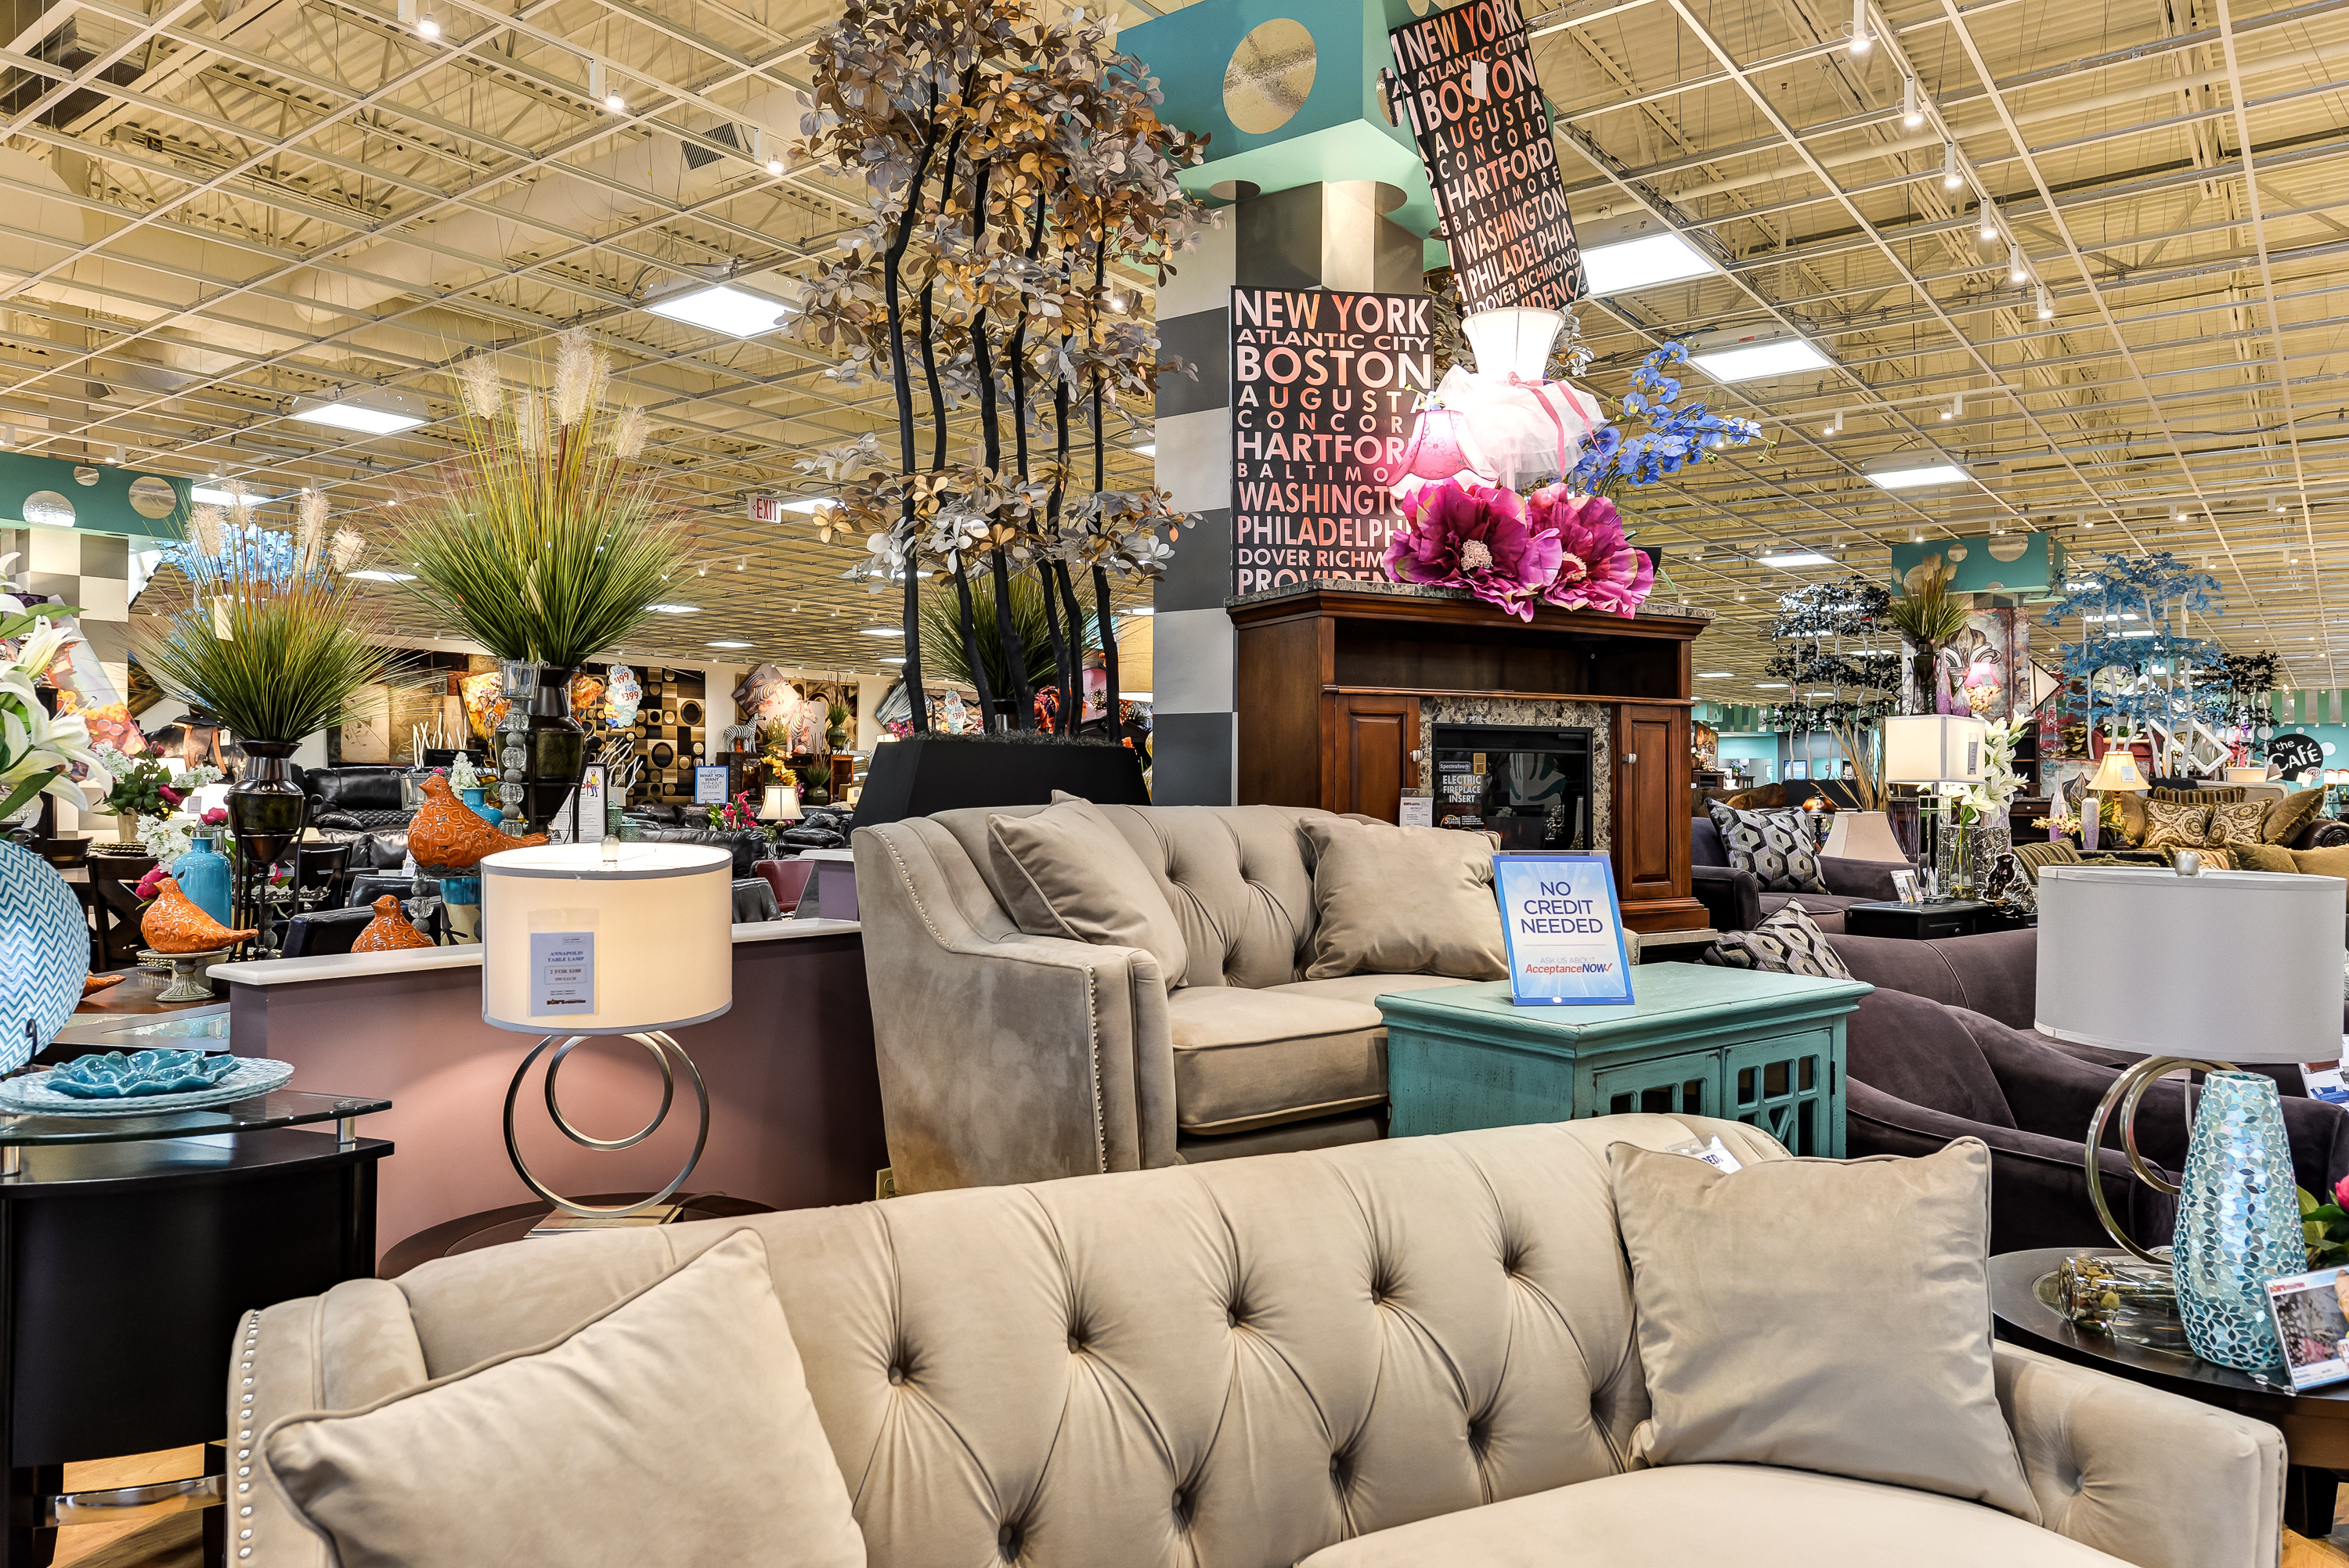 Superbe Bobu0027s Discount Furniture, A Retailer With Shops Across The East Coast And  Midwest, Is